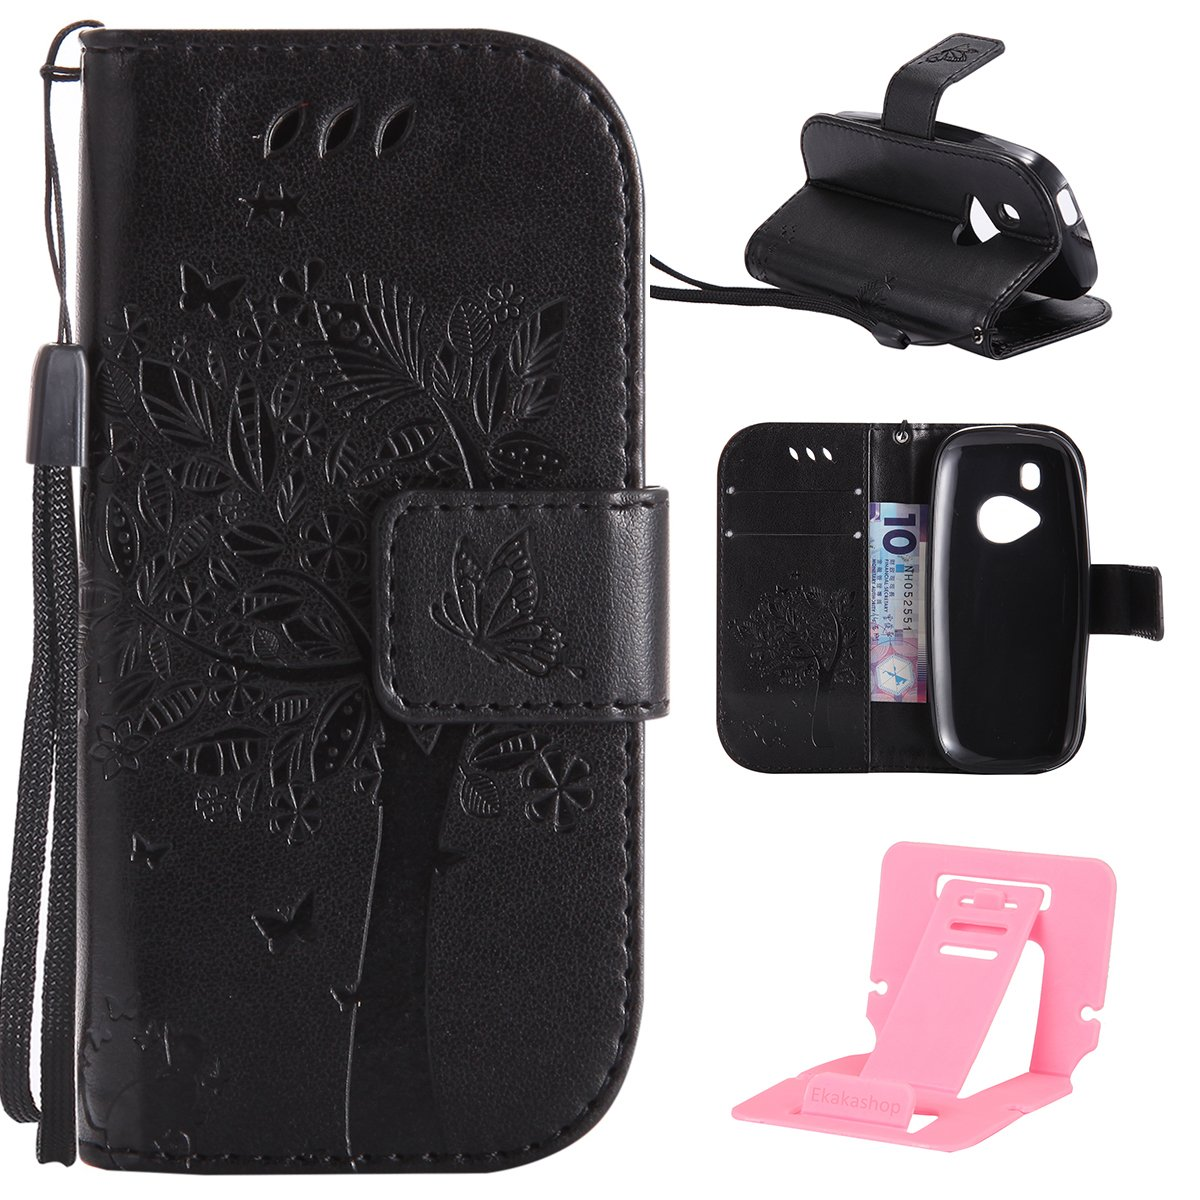 Cover for Nokia 3310 2017 Stand case, Nokia 3310(2017) Leather Case, Ekakashop Animal Floral Pure color Fashion Cat and Tree Pattern Embossing Strong Magnetic Ultra Slim Thin Flip Folio PU Leather Case with Hand strap, Soft Silicone Rubber Inner Shell Shoc